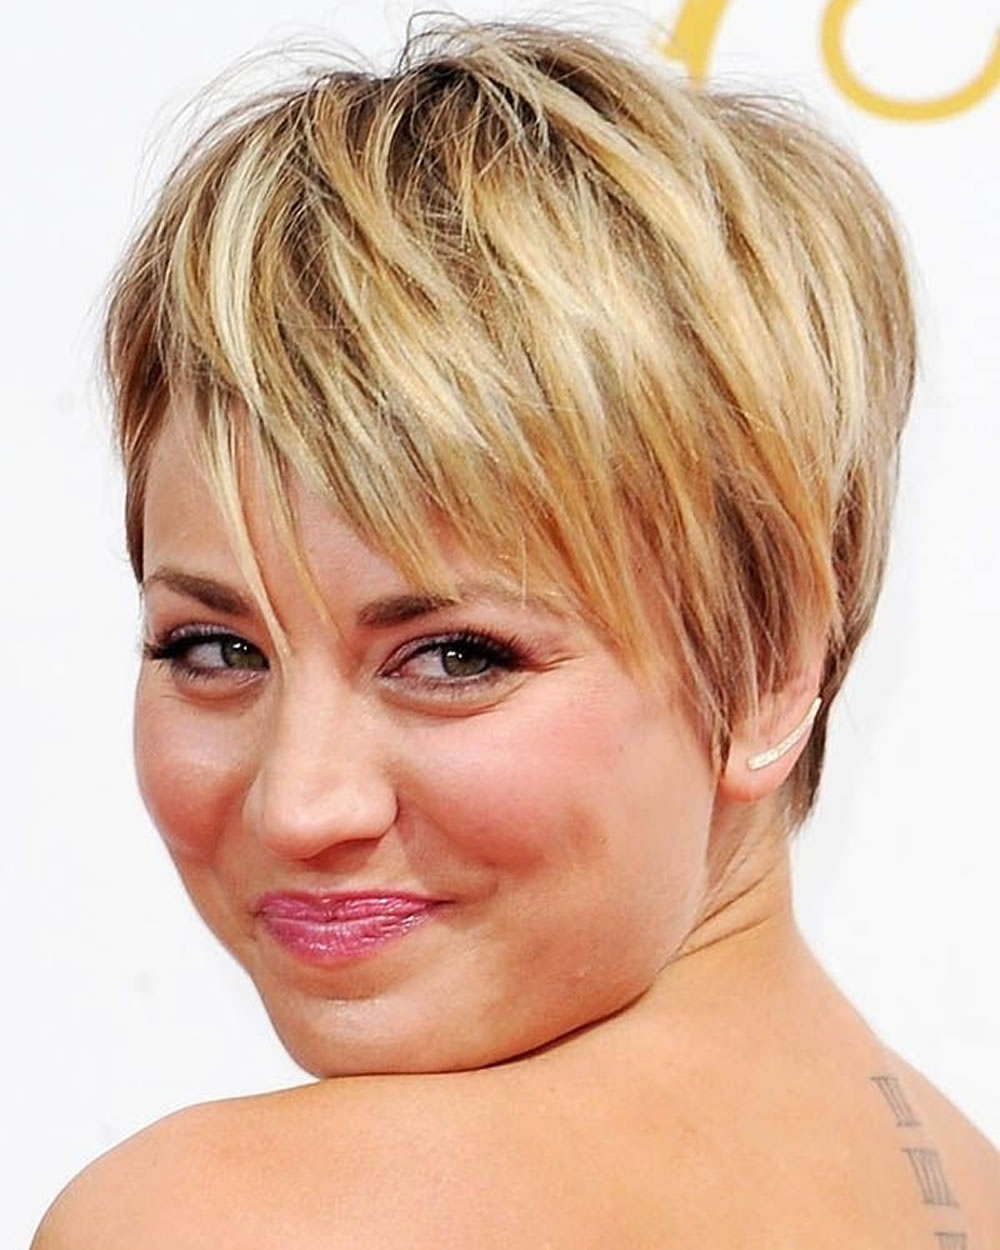 Pixie Hairstyles Fine Hair For Round Face 2018 2019 – Best With Regard To Pixie Hairstyles For Round Faces (View 17 of 20)